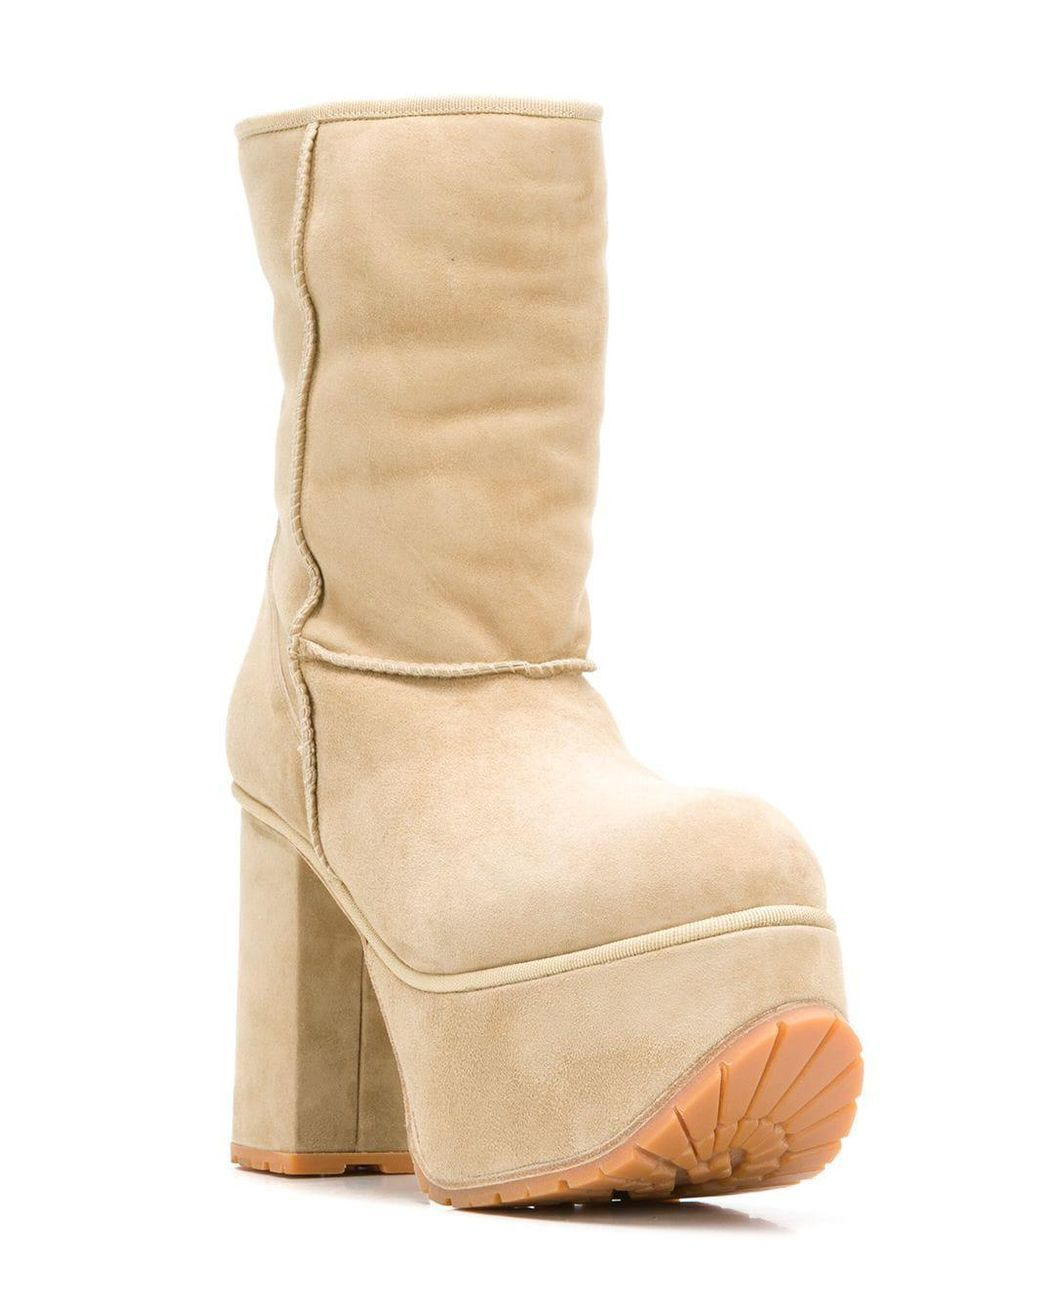 Lyst - R13 Platform Boots in Natural